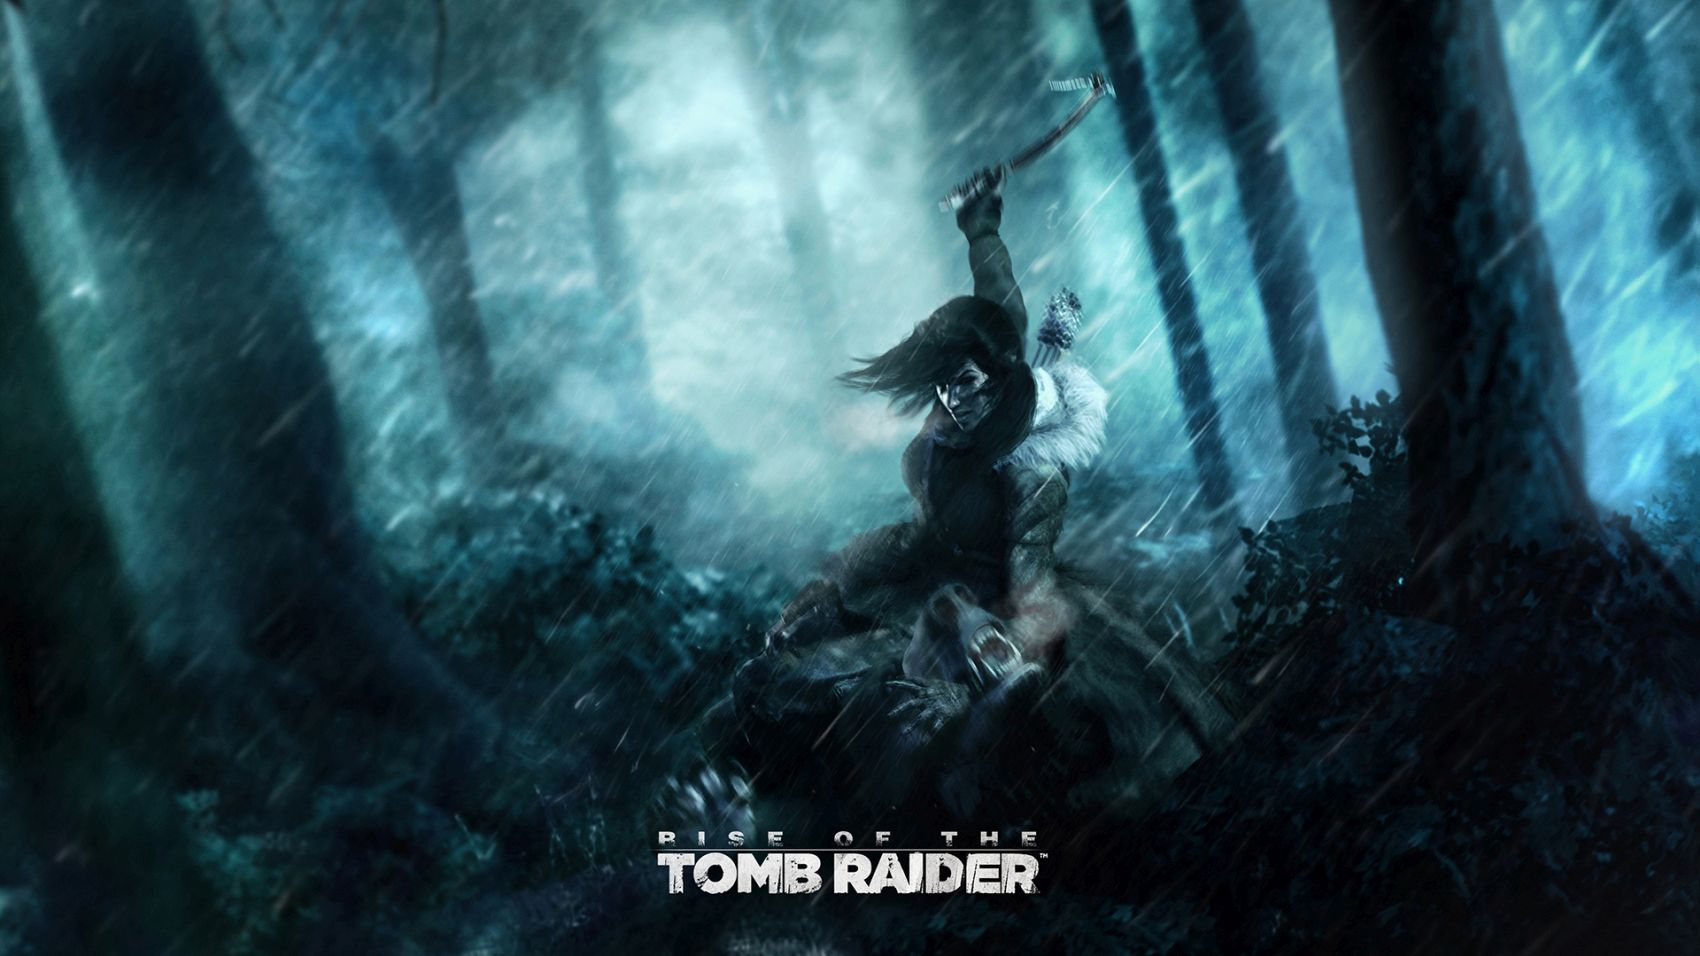 rise-of-tomb-raider-cover-wallpaper-hd